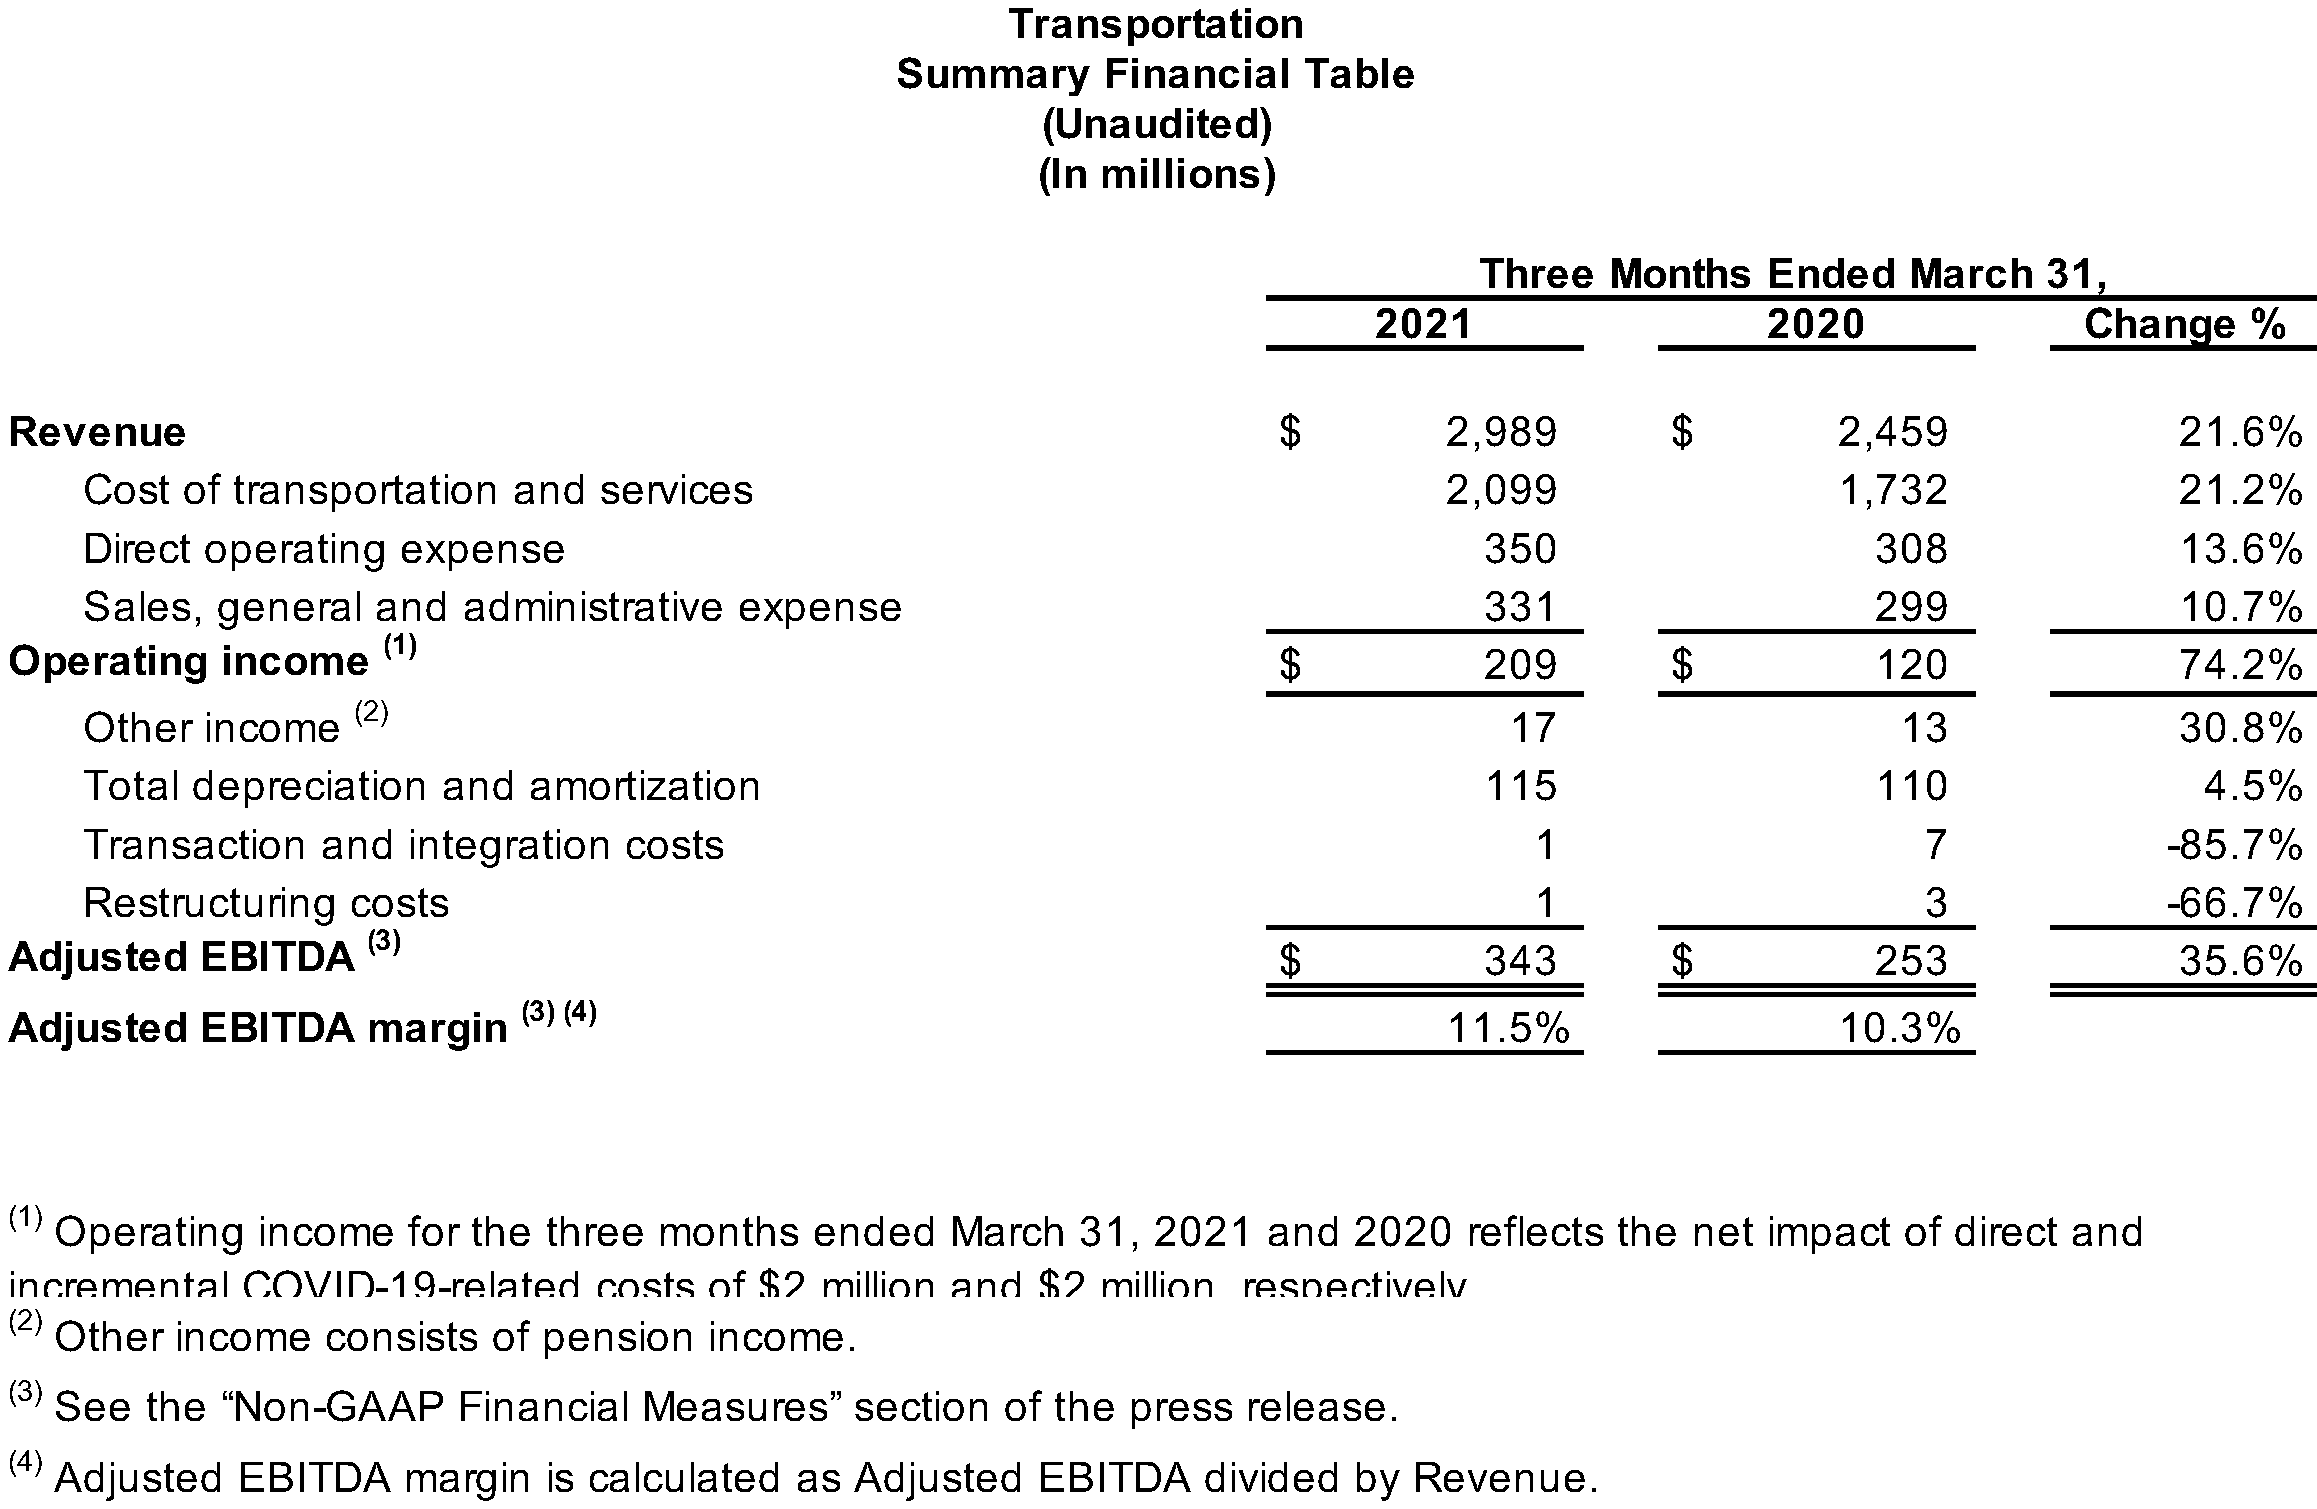 Transportation Summary Financial Table (Unaudited)